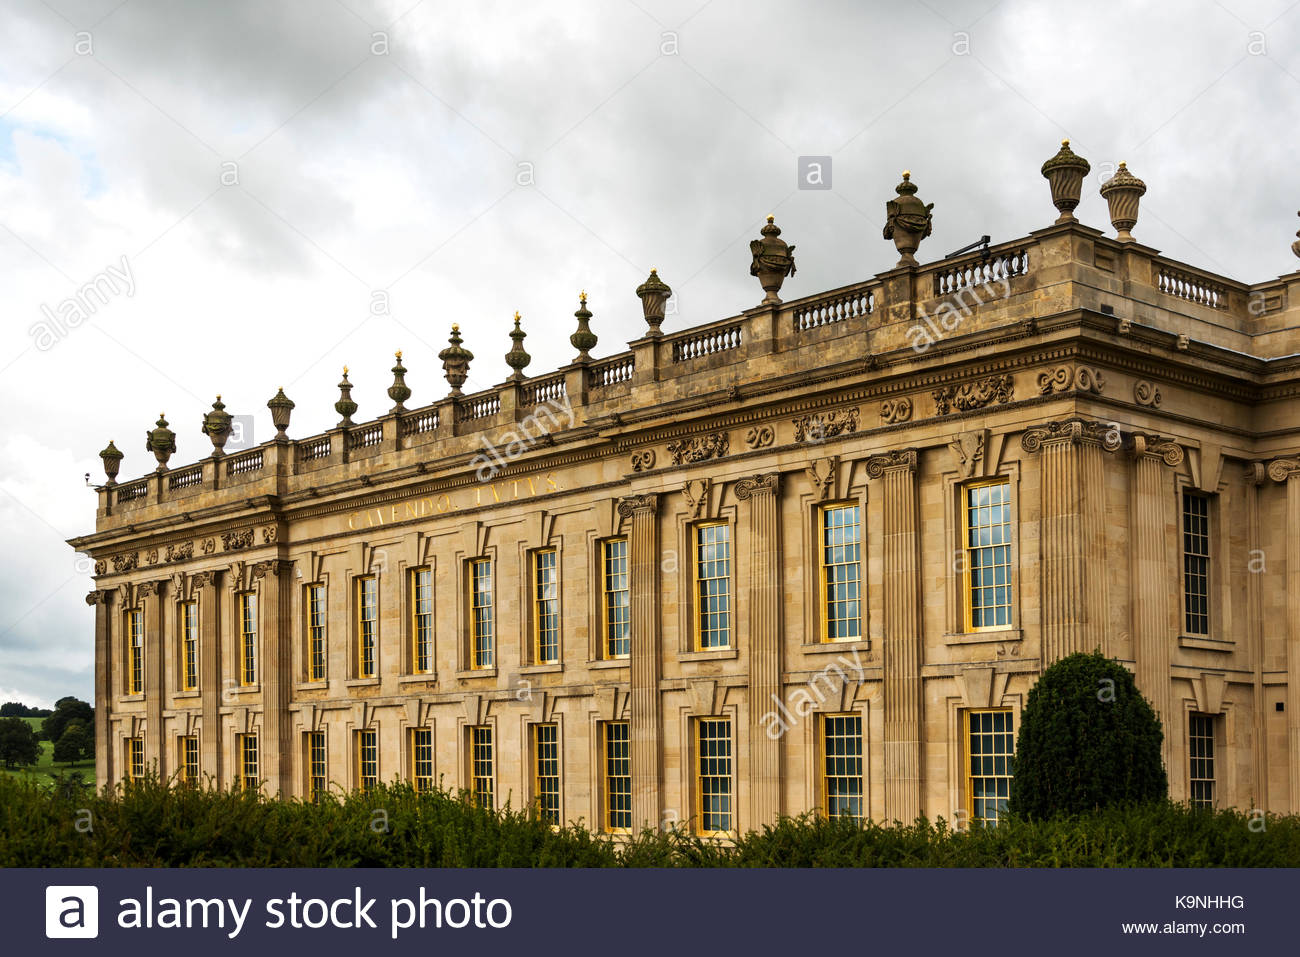 Chatsworth House, exterior building, stately home. - Stock Image